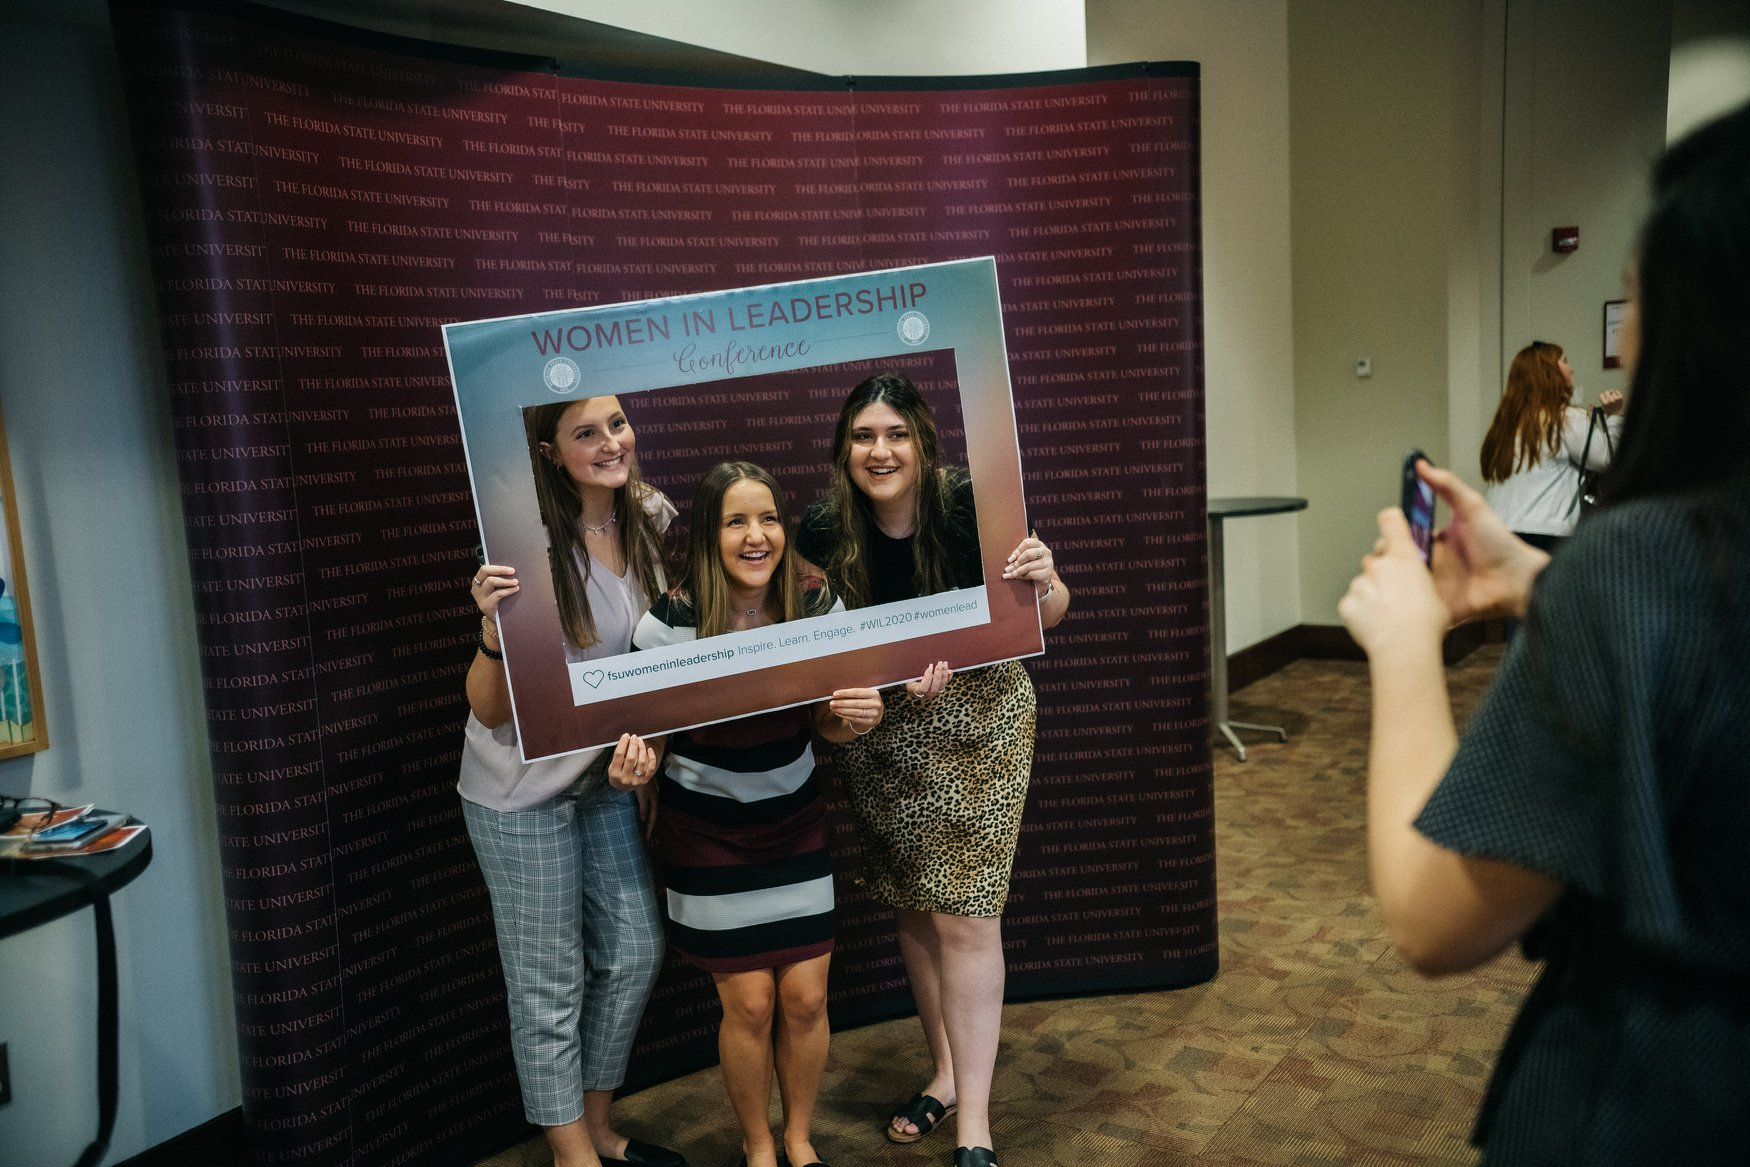 Attendees at the Women in Leadership conference gather for a photo